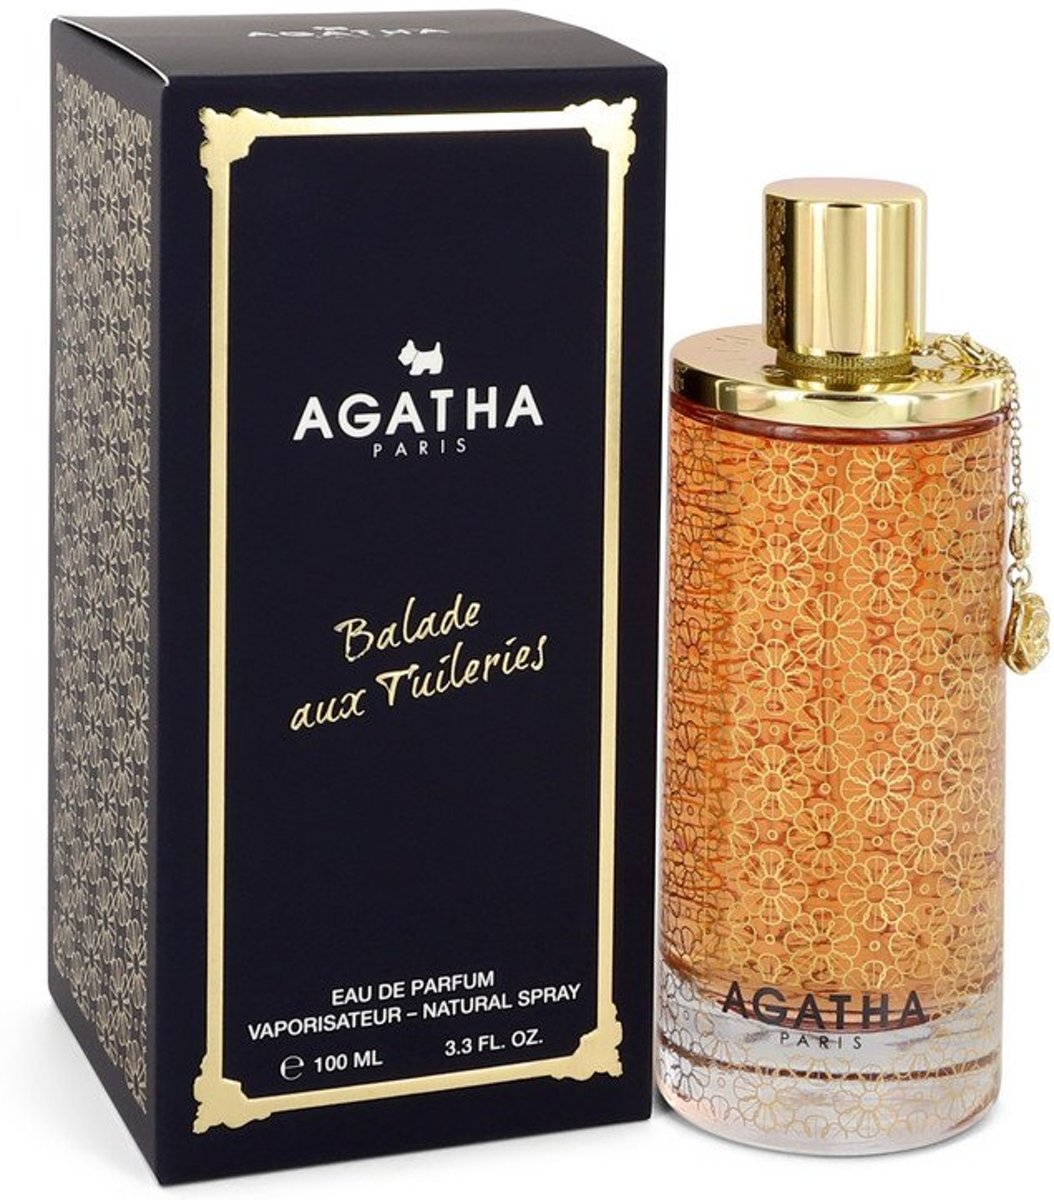 Agatha Paris Agatha Balade Aux Tuileries eau de parfum spray 100 ml